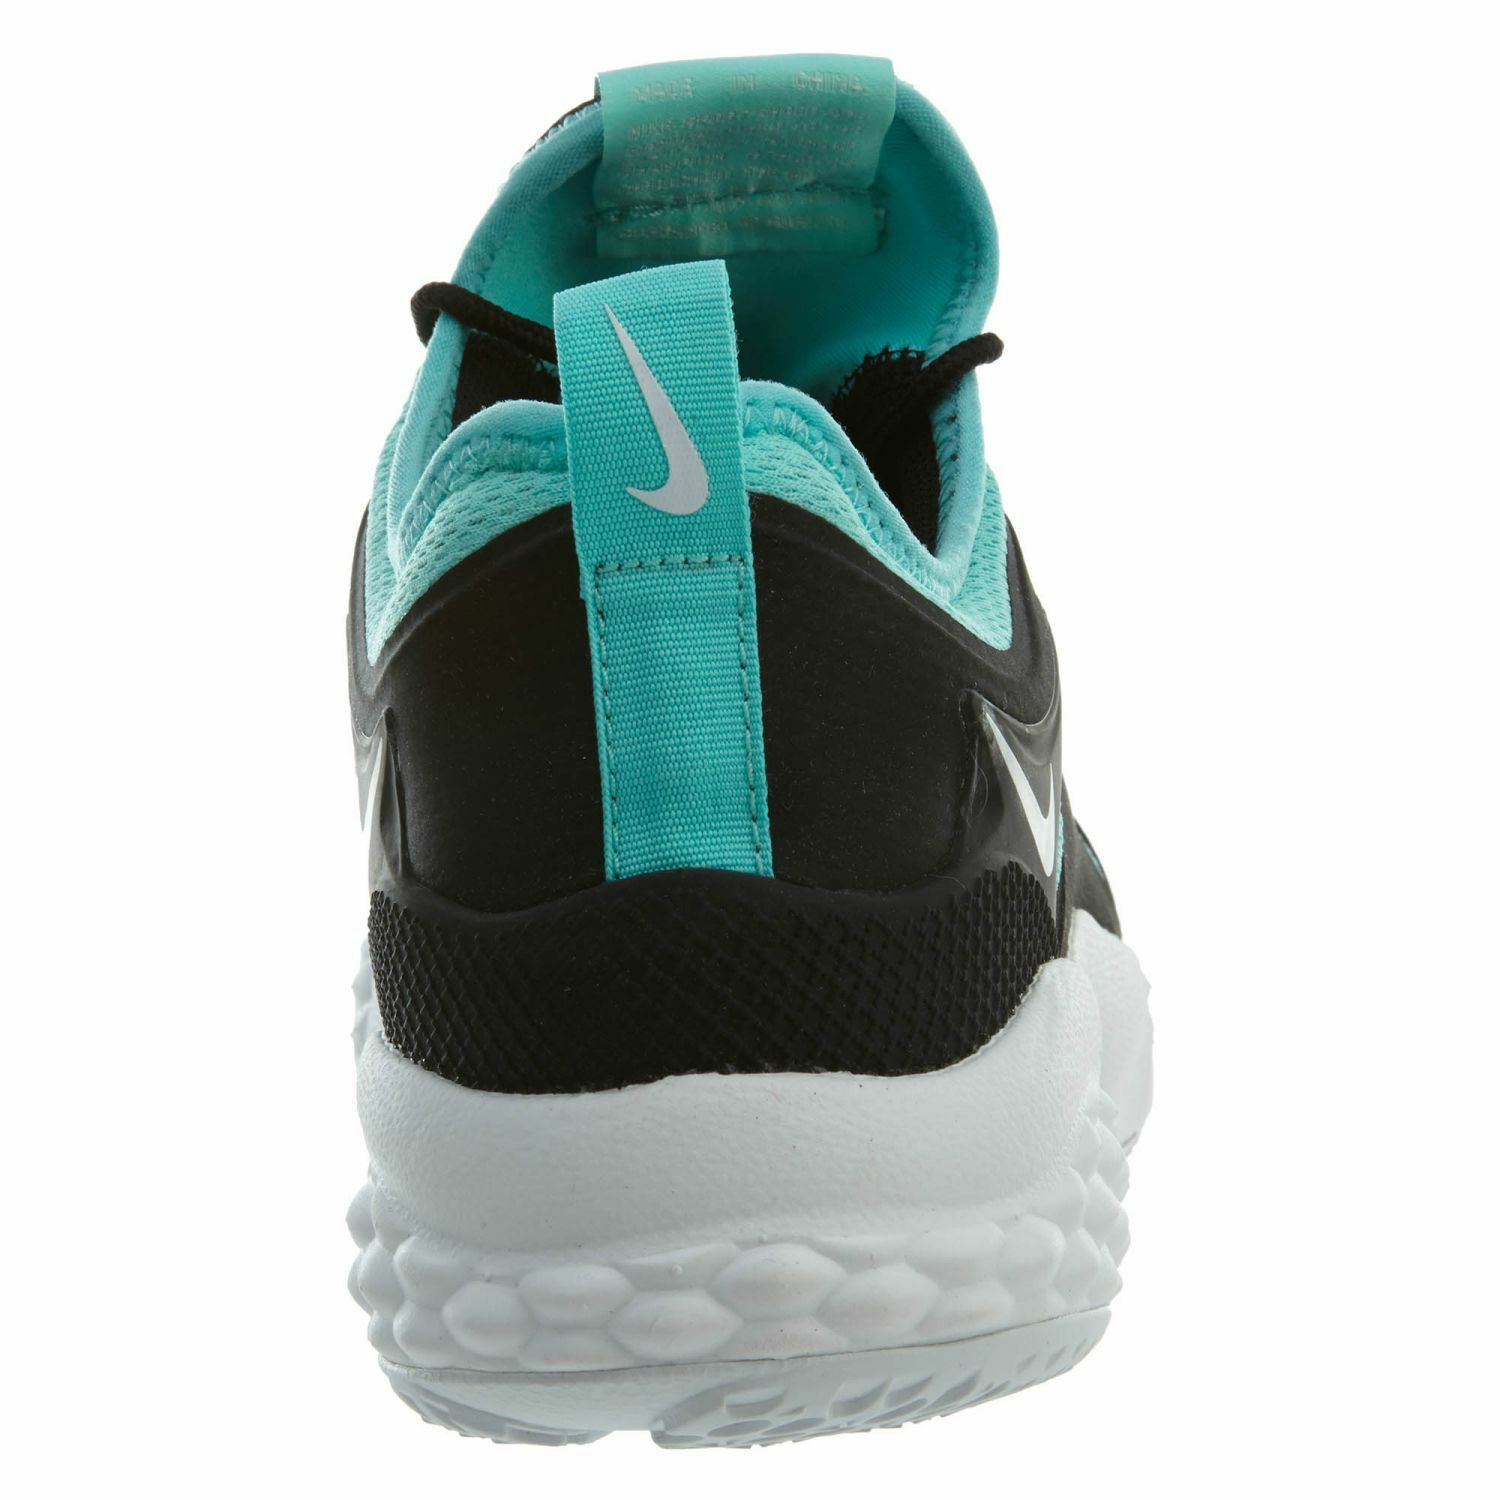 Nike Air Nero Zoom LWP '16 SP Uomo 918226-006 Nero Air Turquoise Running Shoes Size 8.5 ffe261